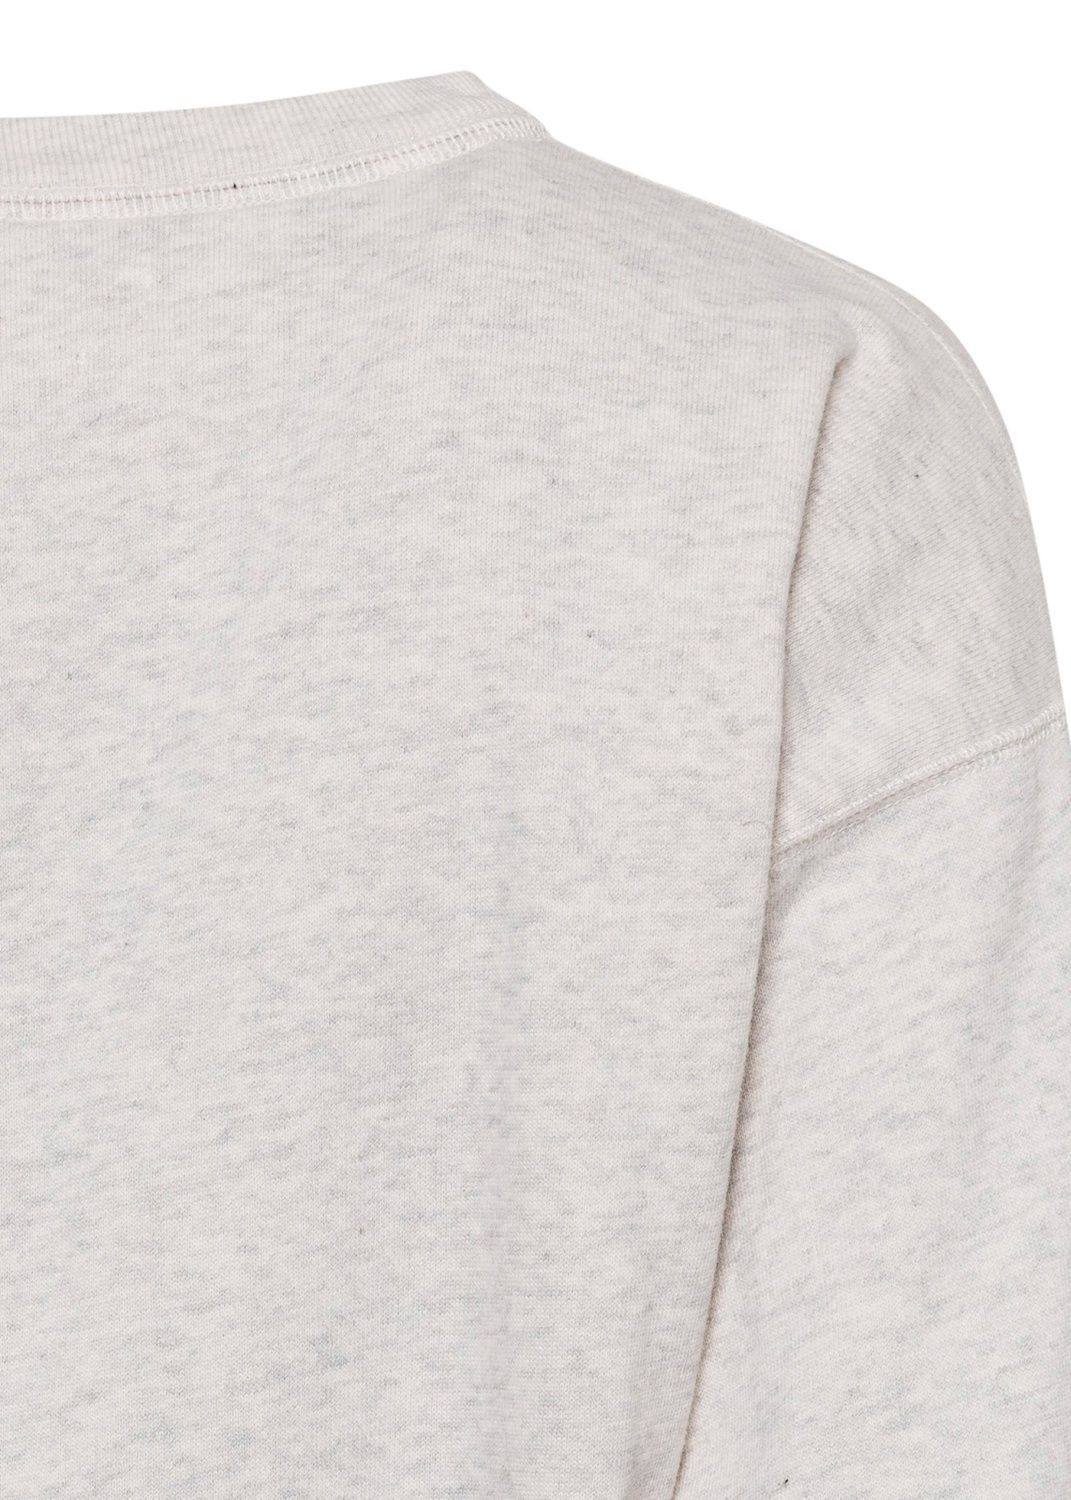 MOBYLI Sweat shirt image number 3